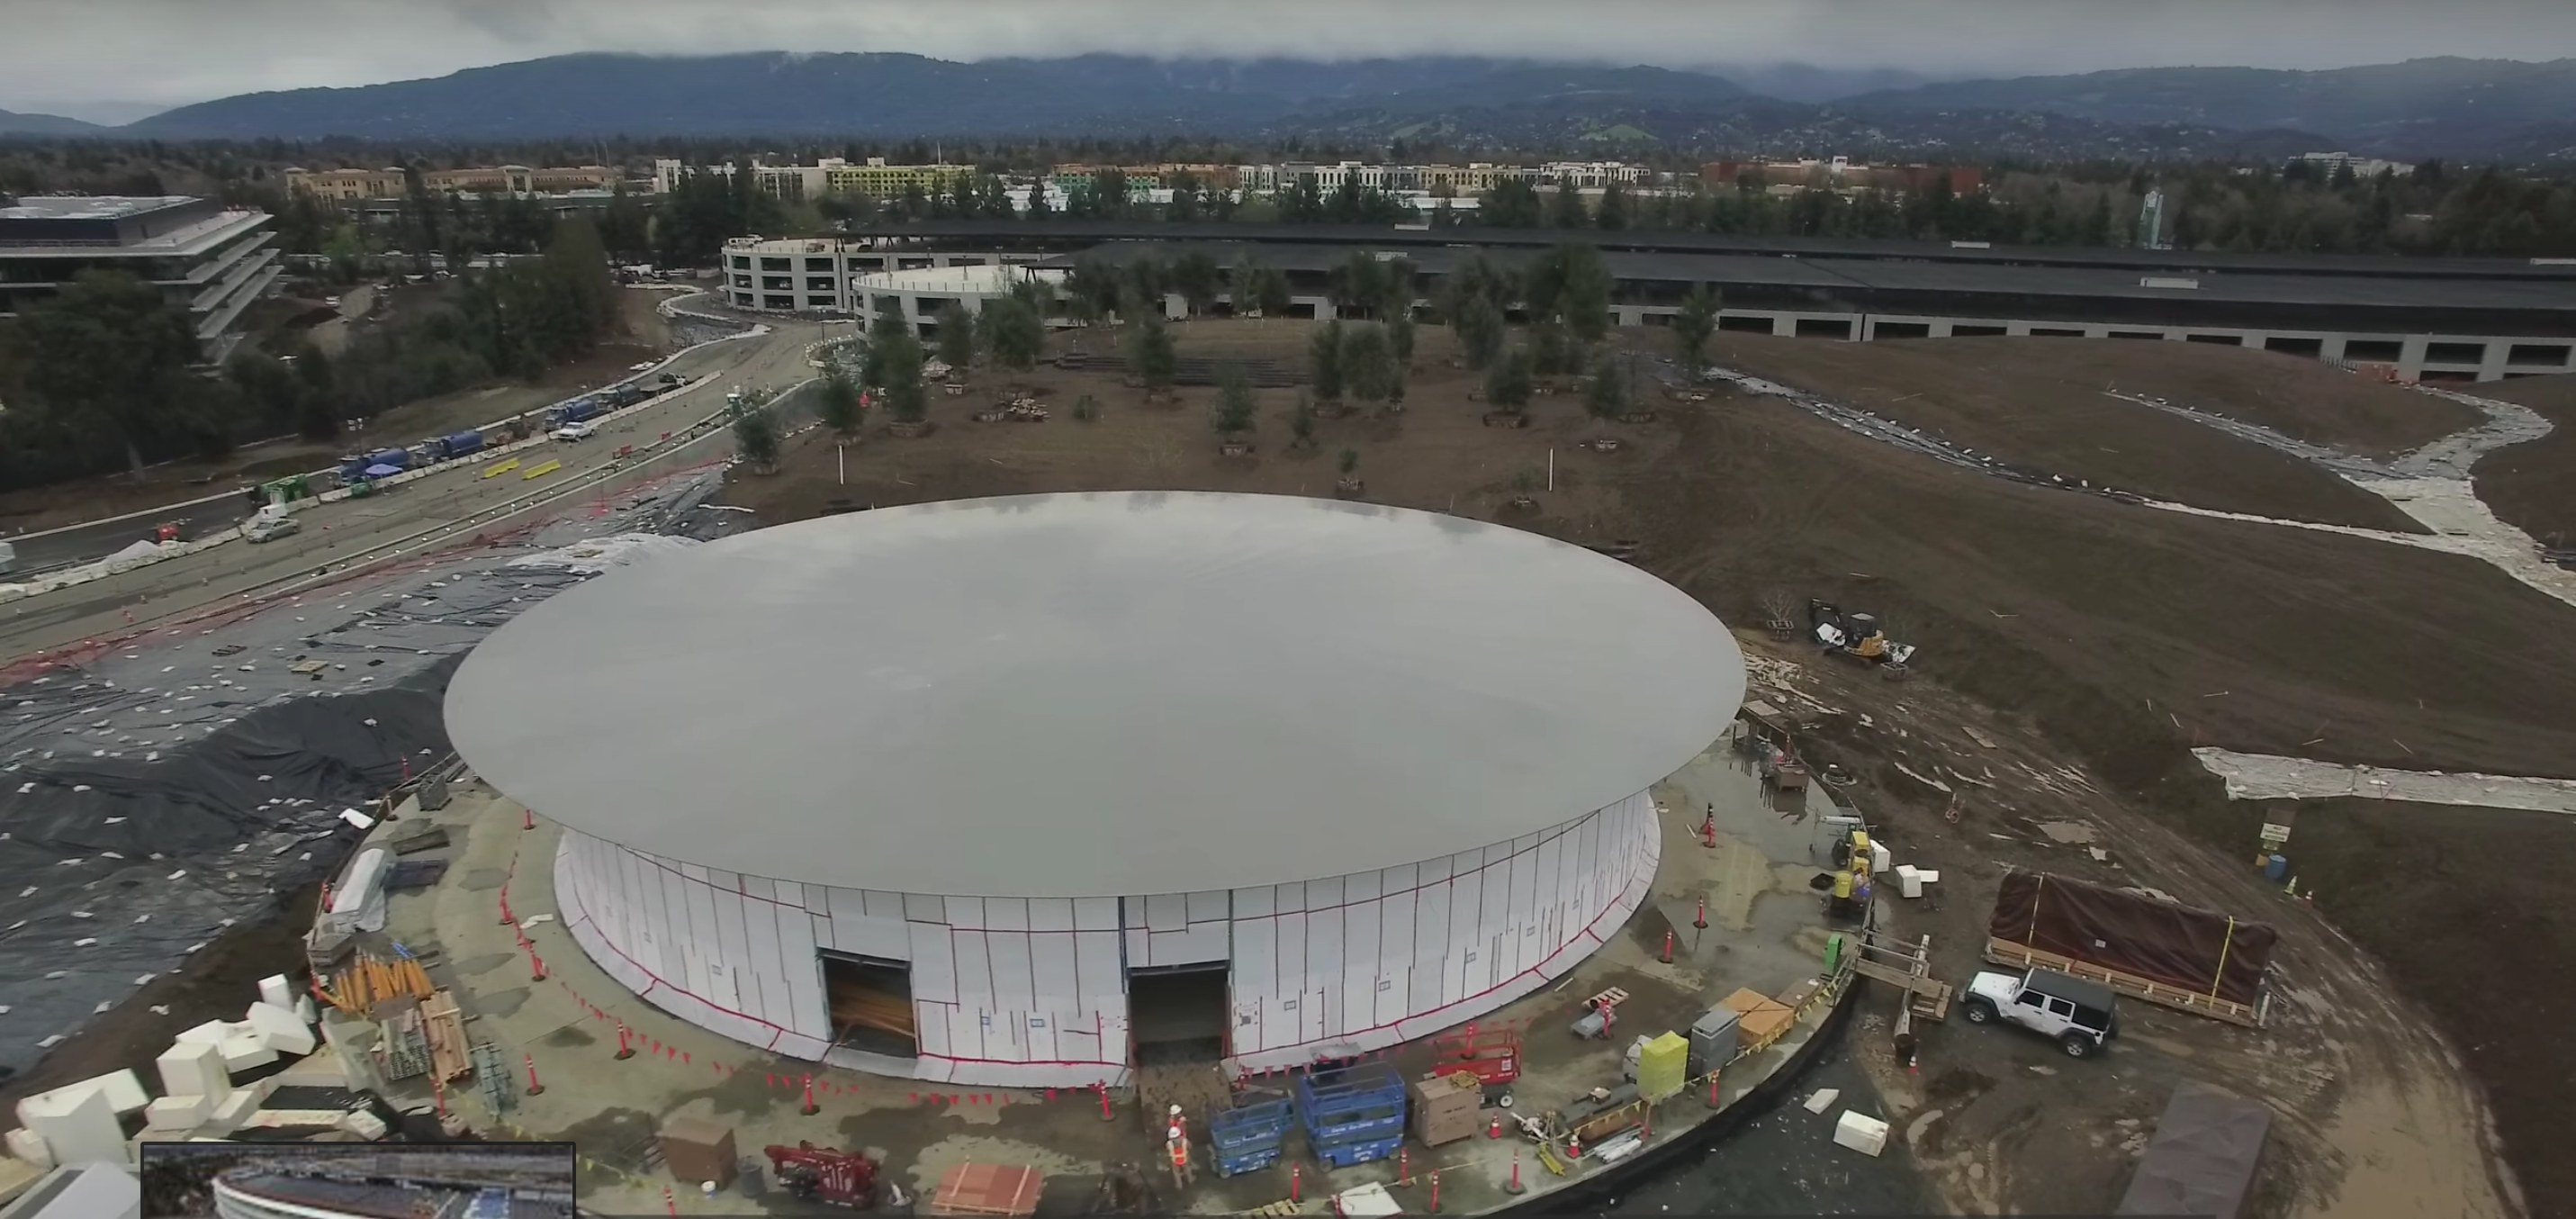 A roof has been built over Apple Campus 2's auditorium.